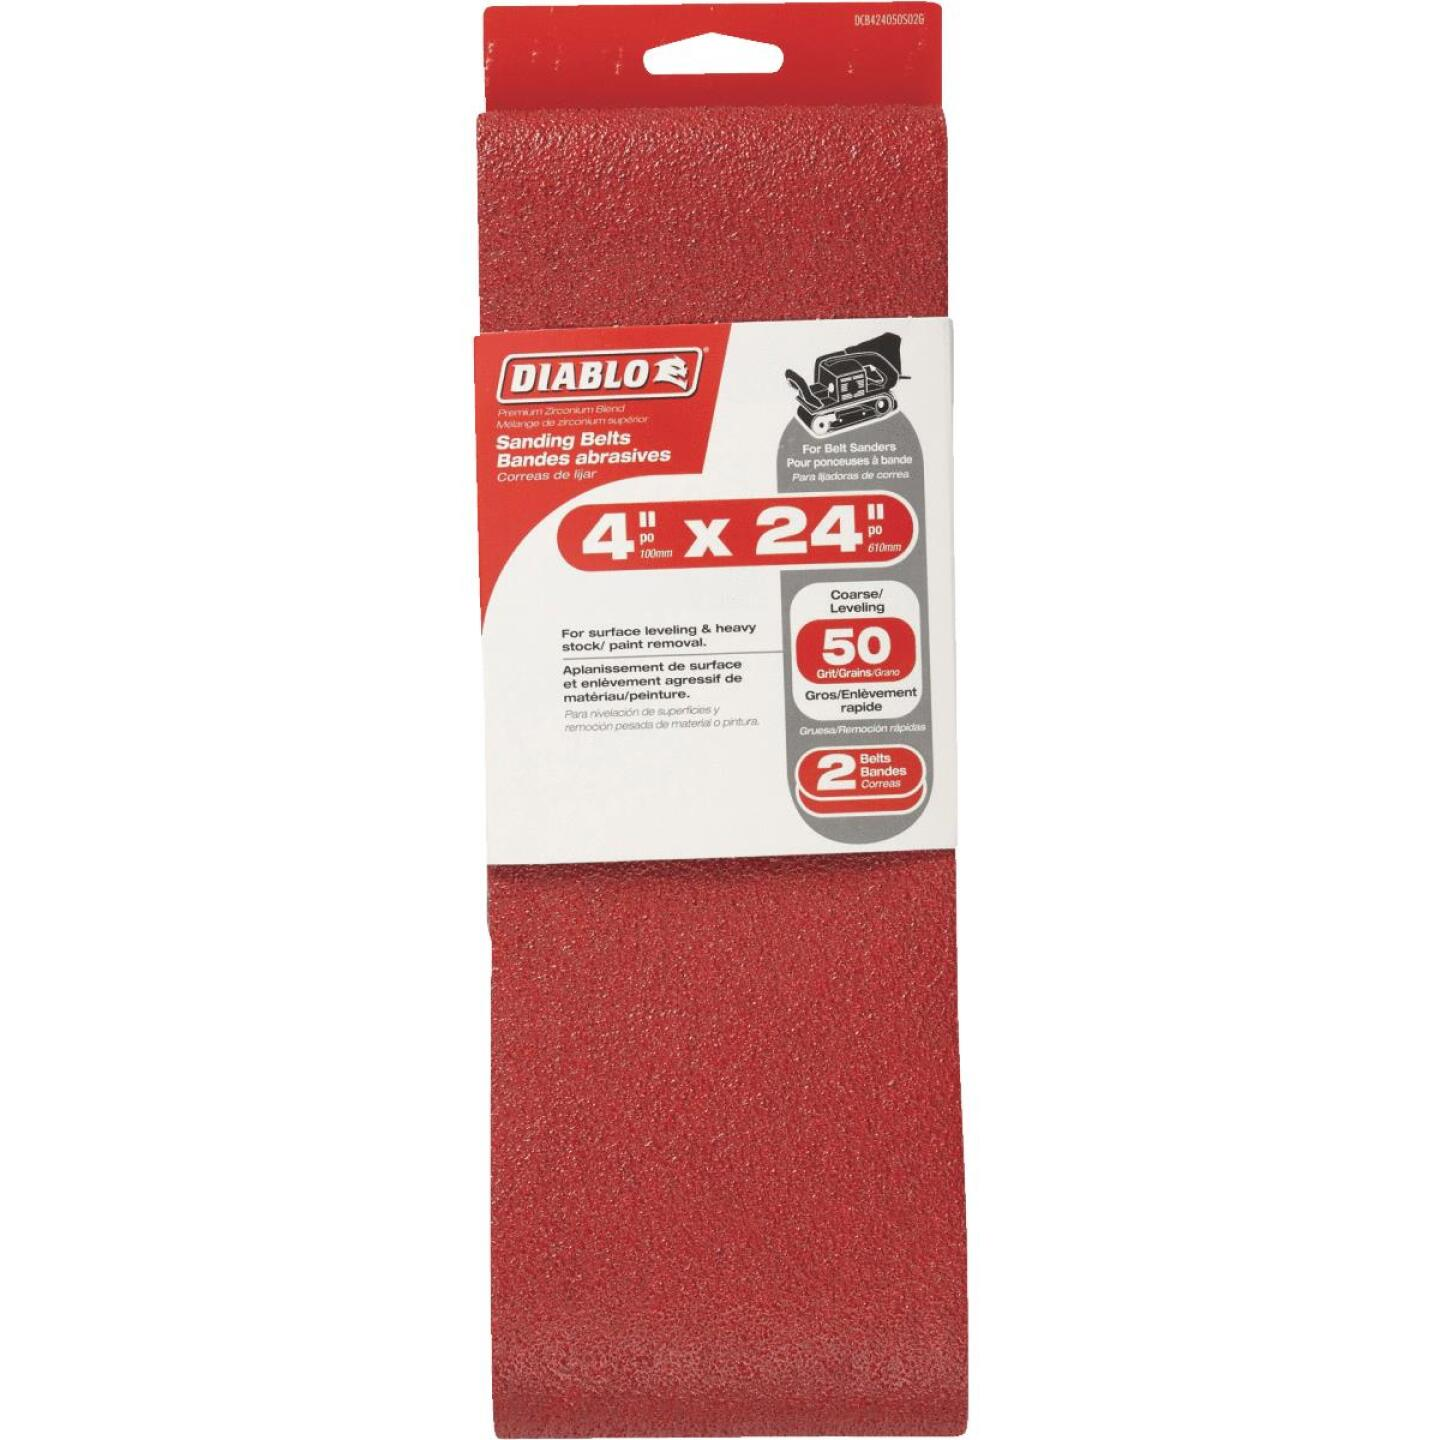 Diablo 4 In. x 24 In. 50 Grit General Purpose Sanding Belt (2-Pack) Image 1